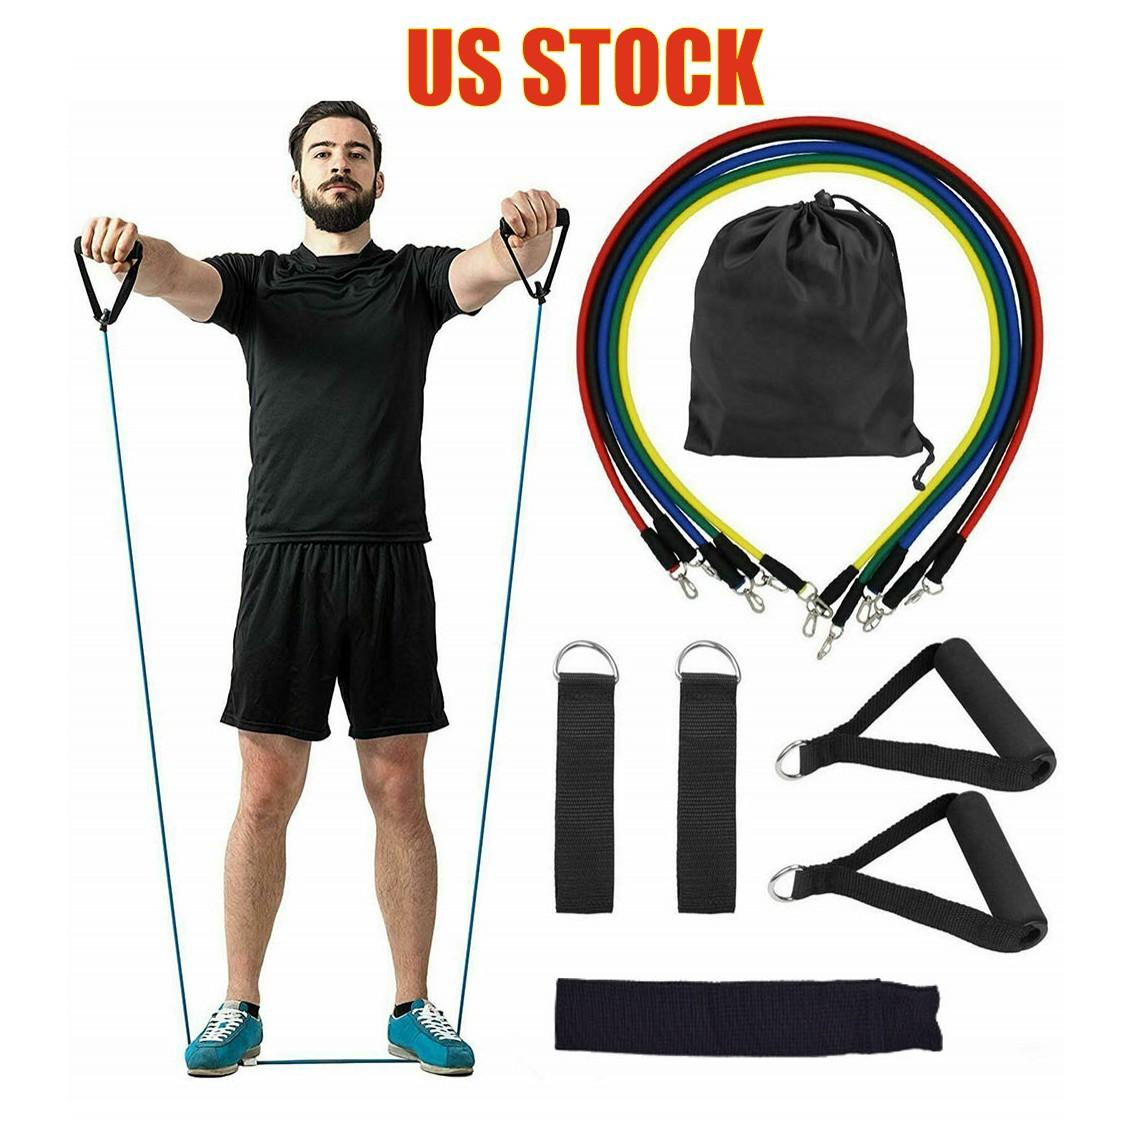 US Stock 11pcs/set Pull Rope Fitness Exercises Resistance Bands Latex Tubes Pedal Excerciser Body Training Workout Elastic Yoga Band